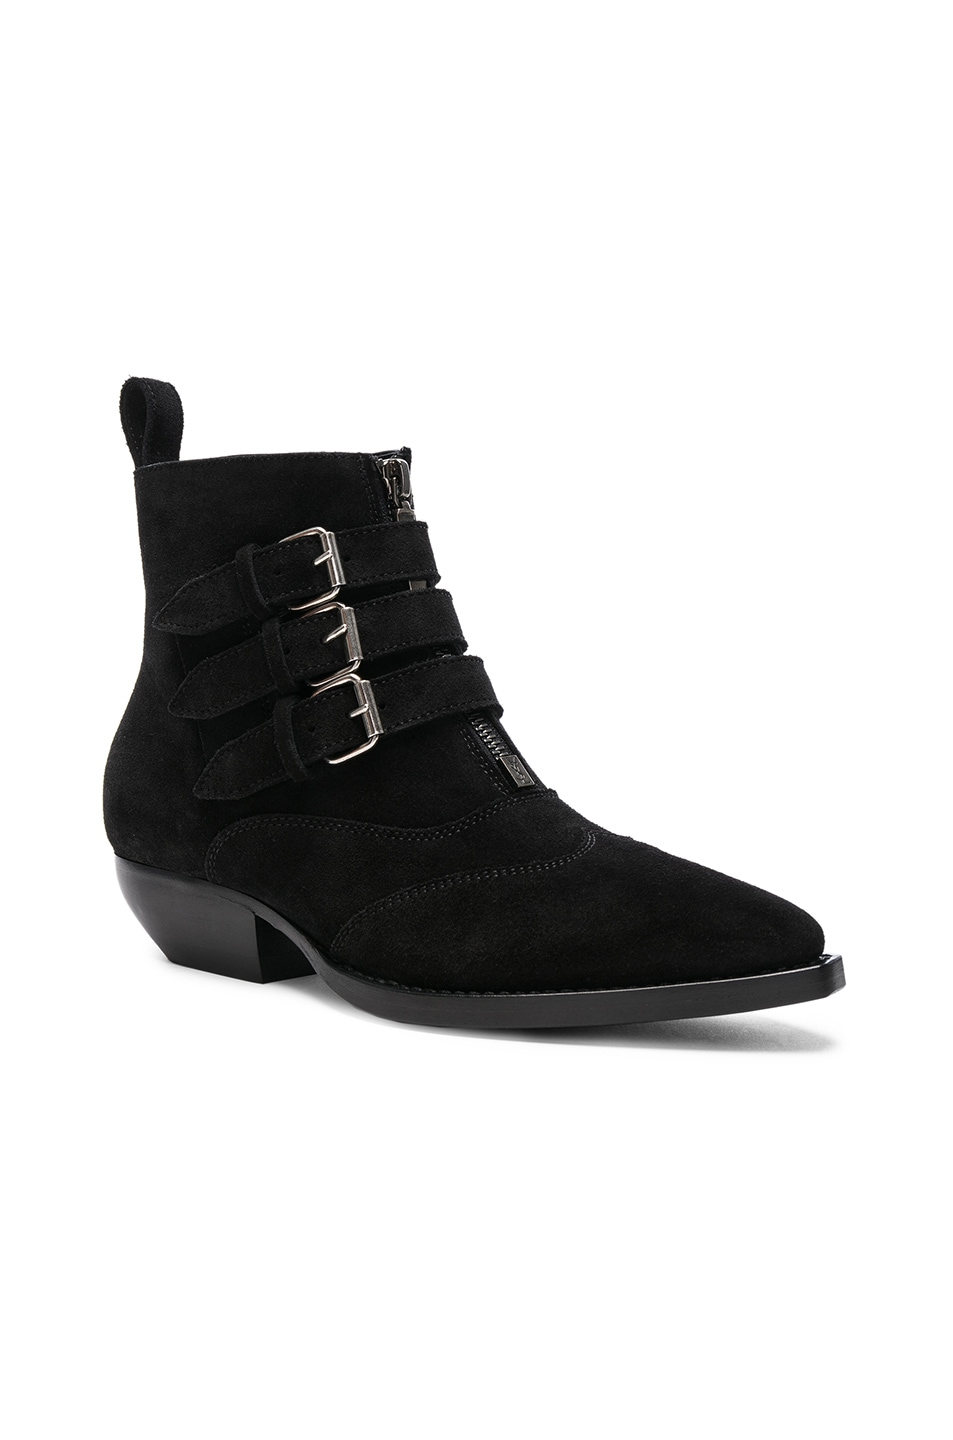 Image 2 of Saint Laurent Suede Theo Buckled Ankle Boots in Black